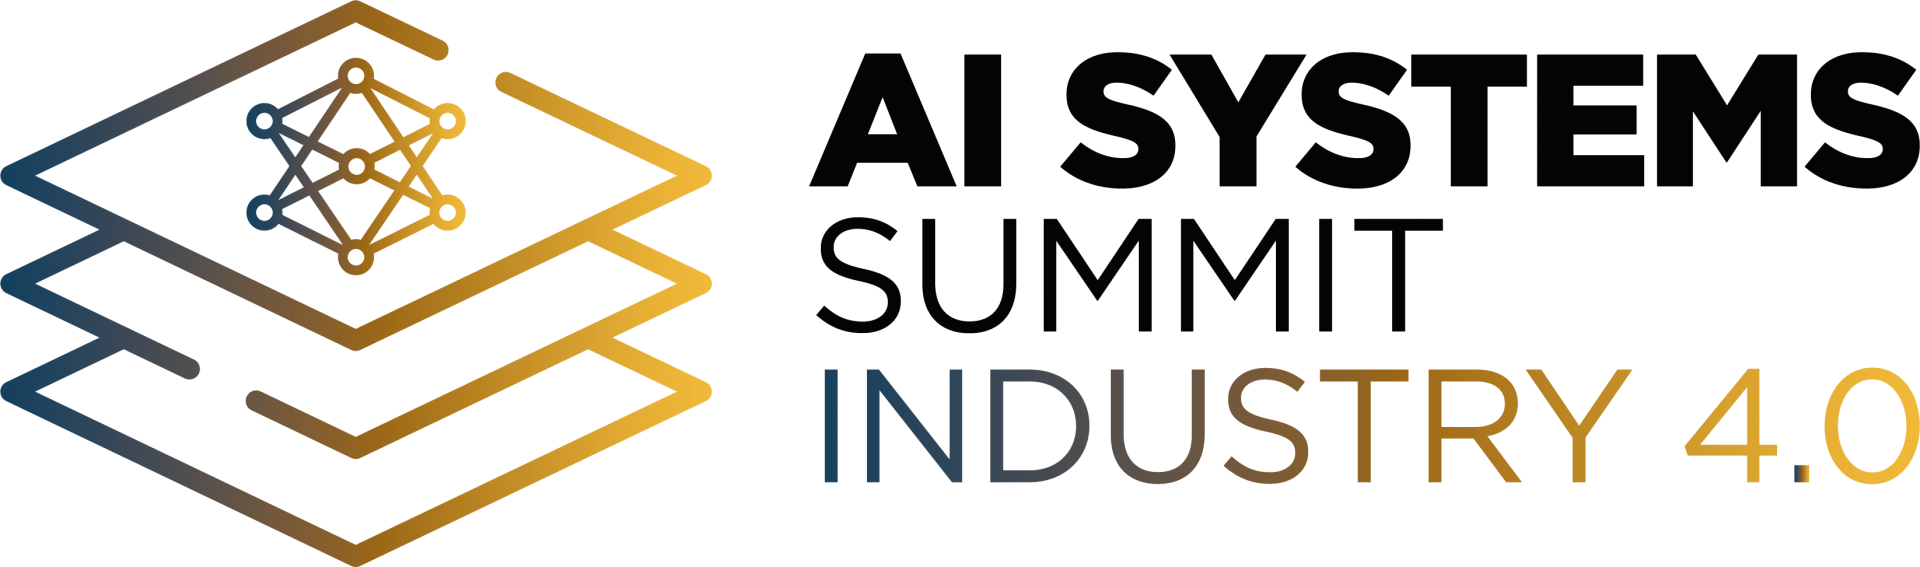 AI Systems Summit: Industry 4.0